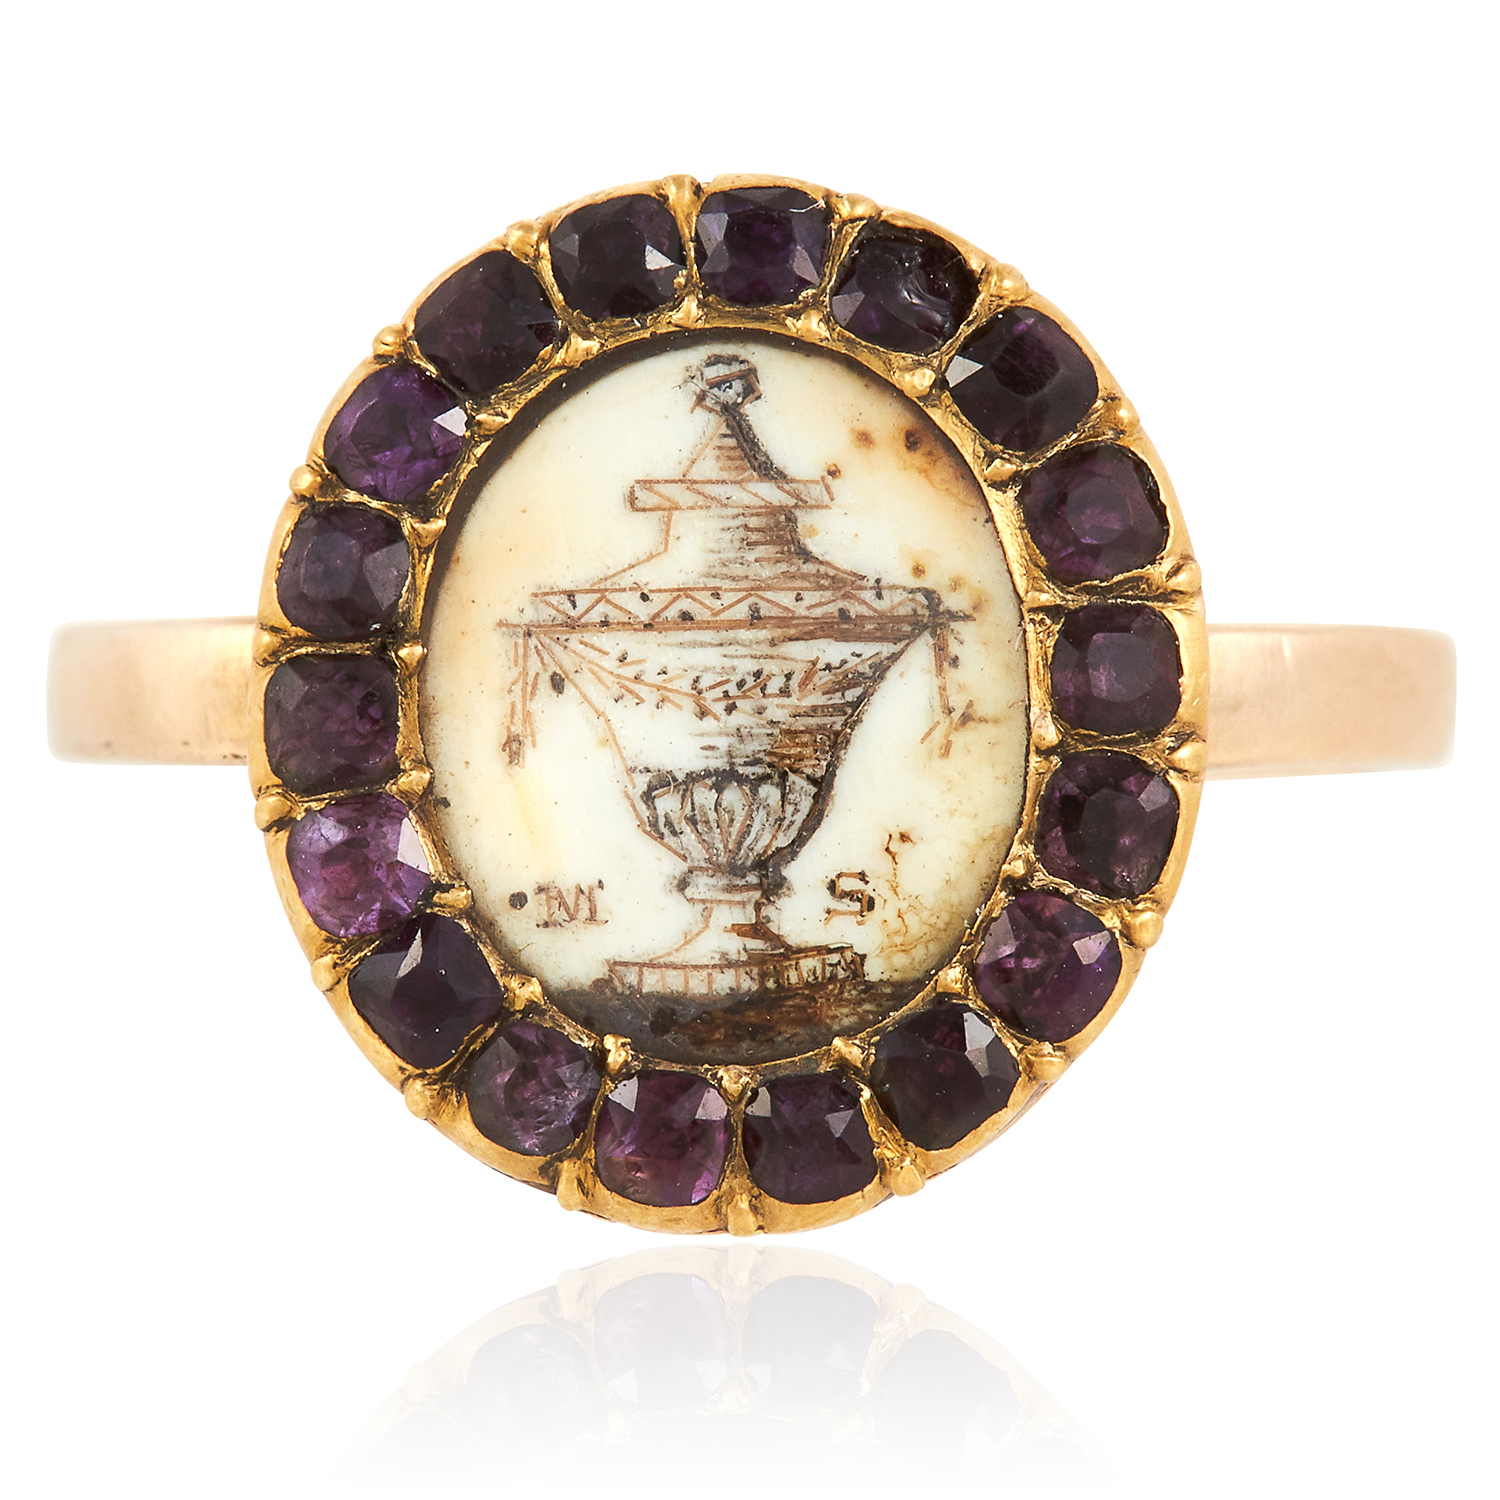 Los 52 - AN ANTIQUE GEORGIAN MINIATURE AND GARNET MOURNING RING, 18TH CENTURY in high carat yellow gold,